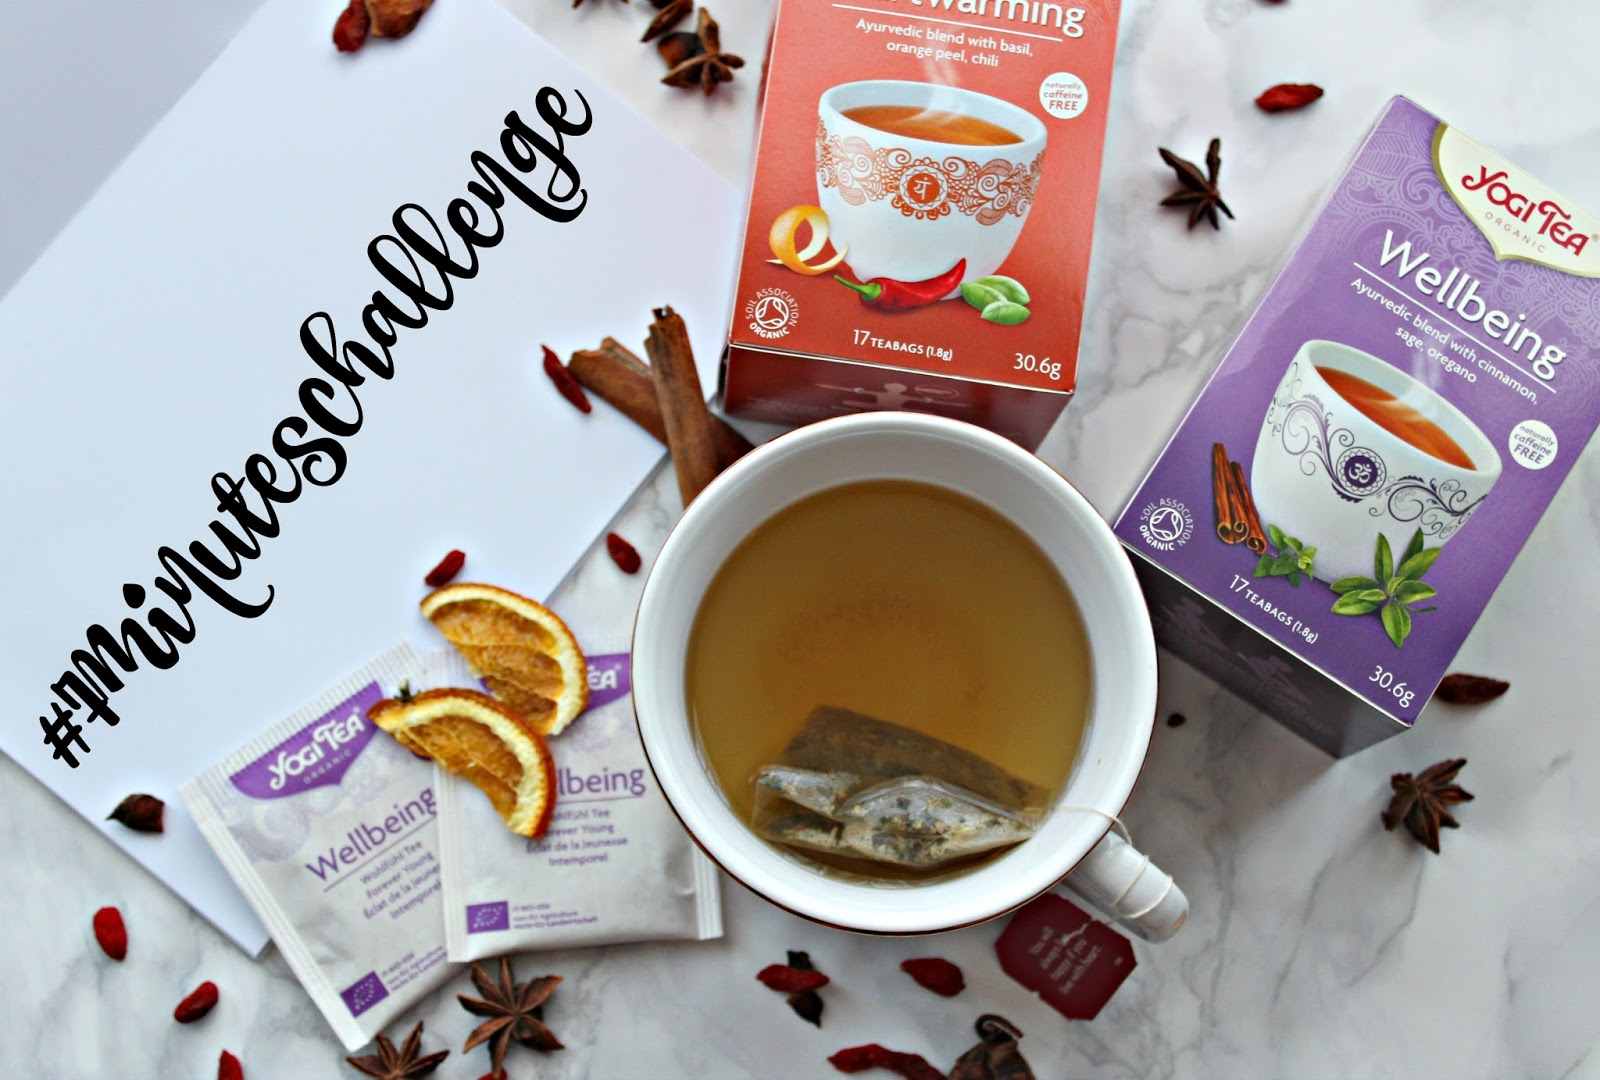 The Yogi Tea #7Minuteschallenge (Sponsored)